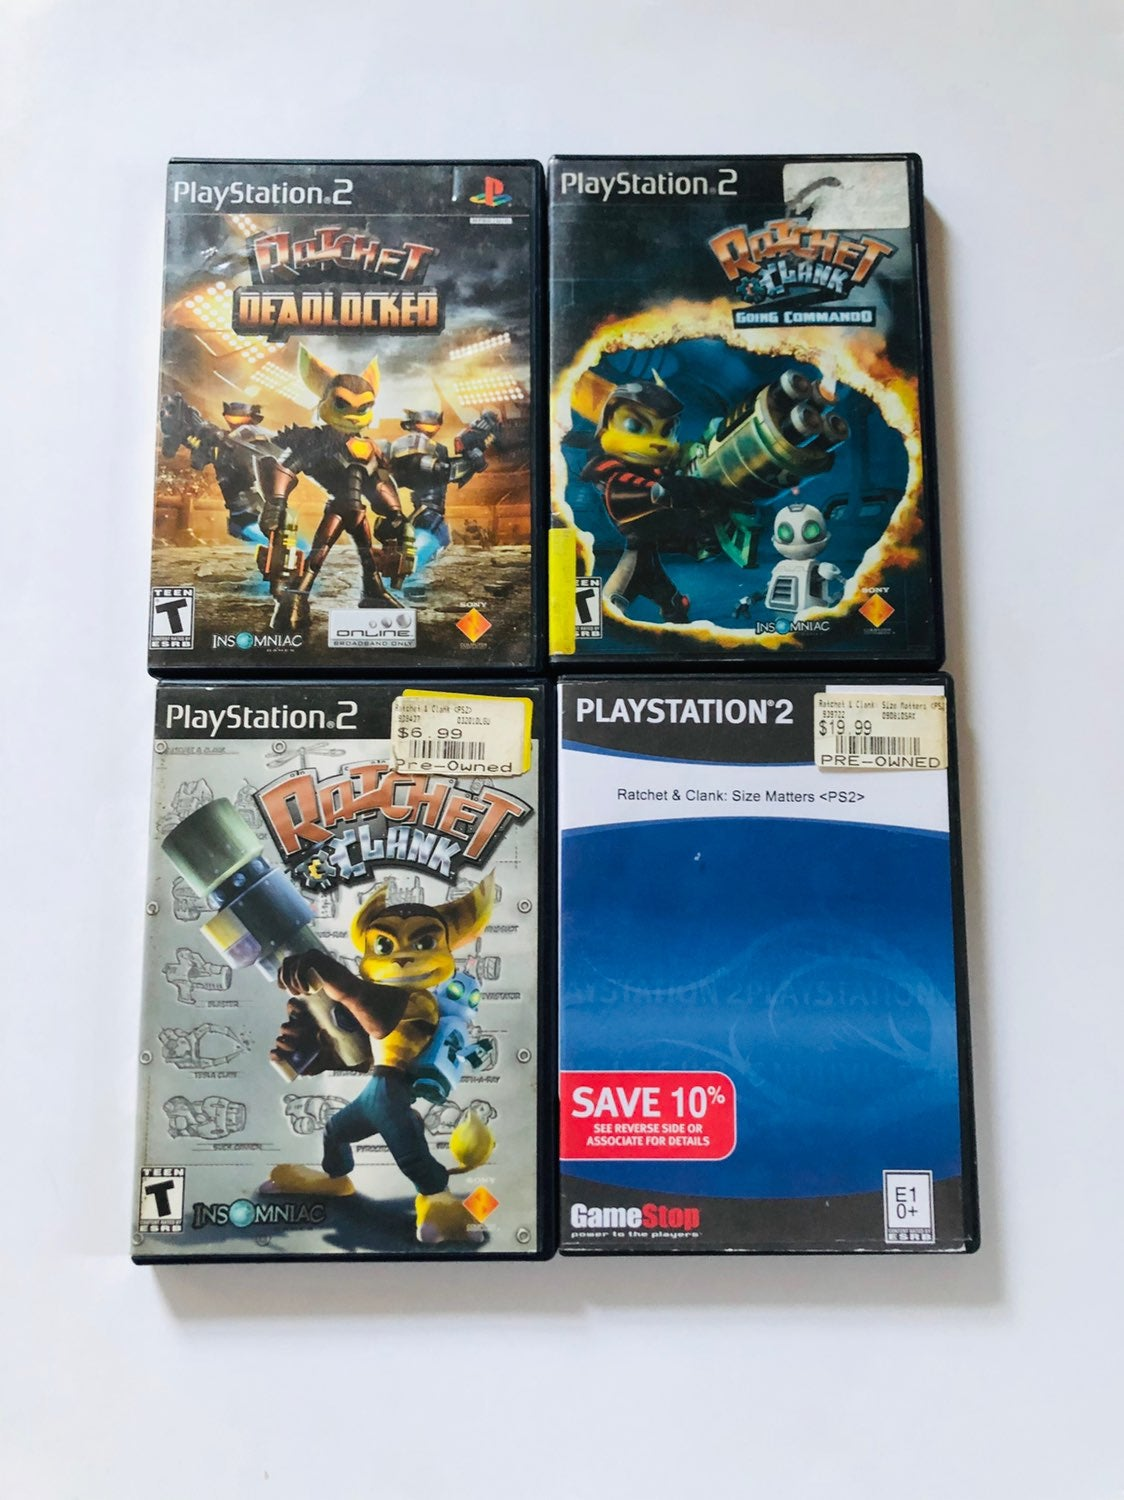 ratchet and clank PlayStation 2 bundle